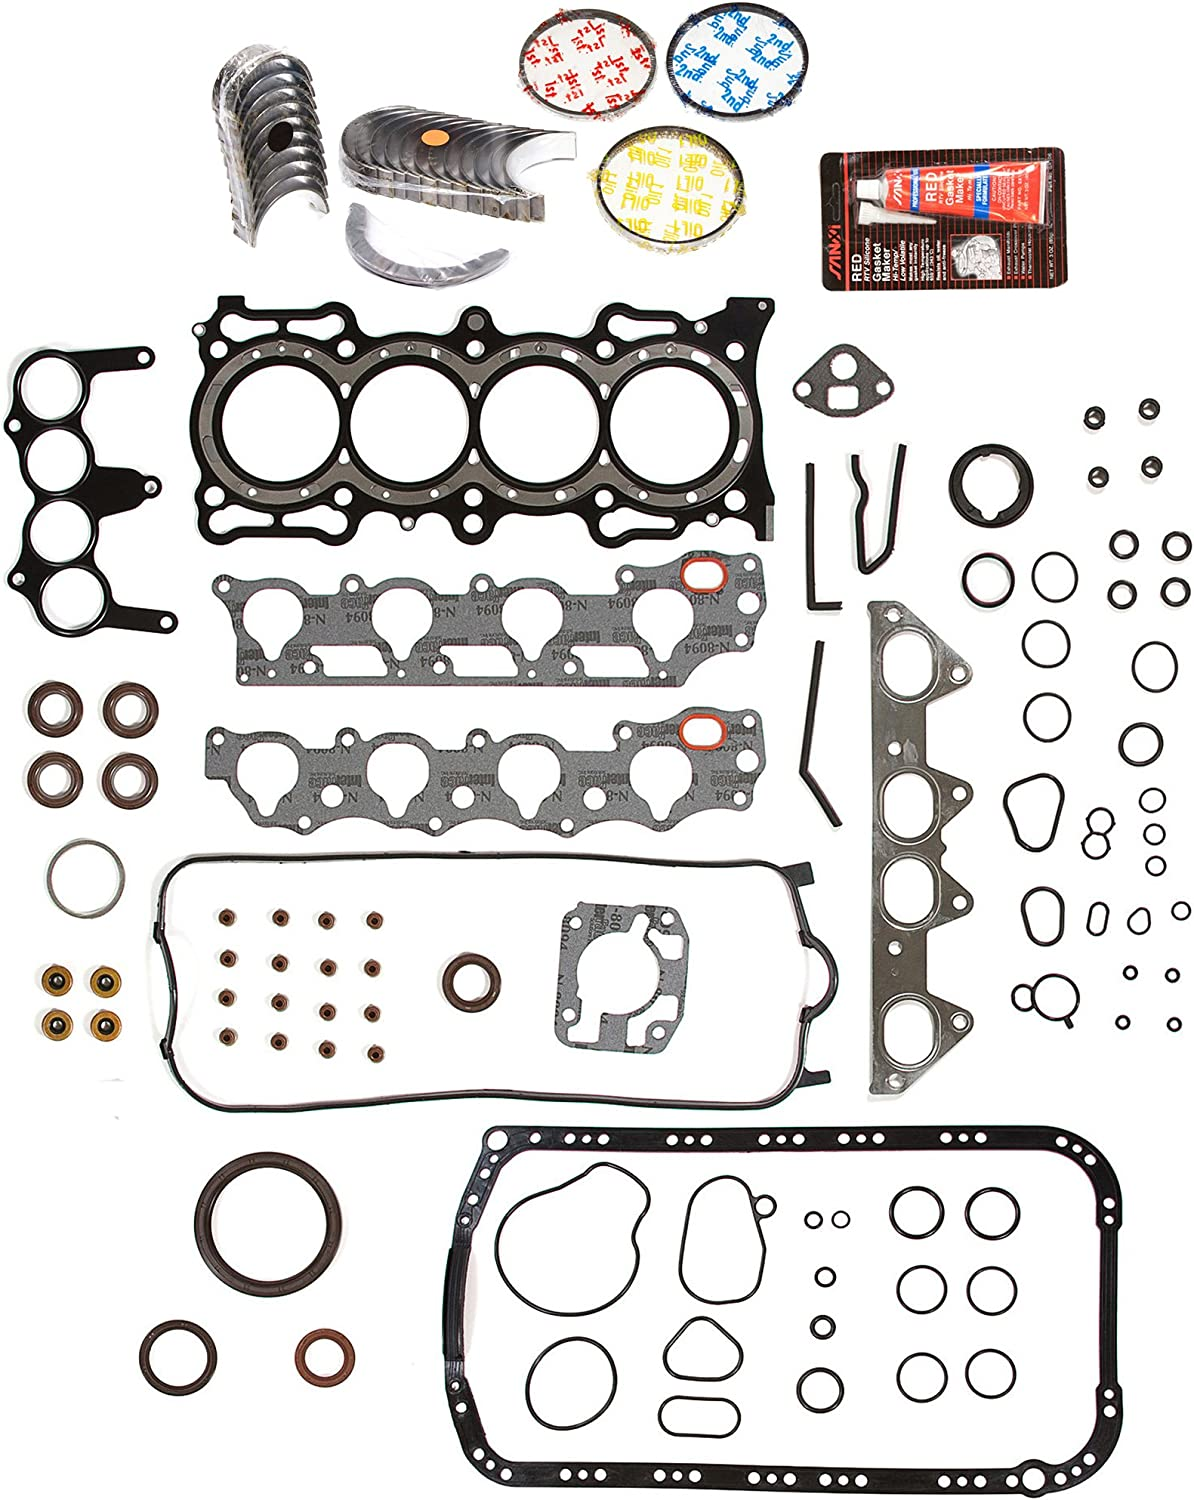 OK4010M//0//0//0 98-02 Acura CL Honda Accord Vtec 2.3L SOHC F23A1 F23A4 F23A5 F23A7 Master Overhaul Engine Rebuild Kit